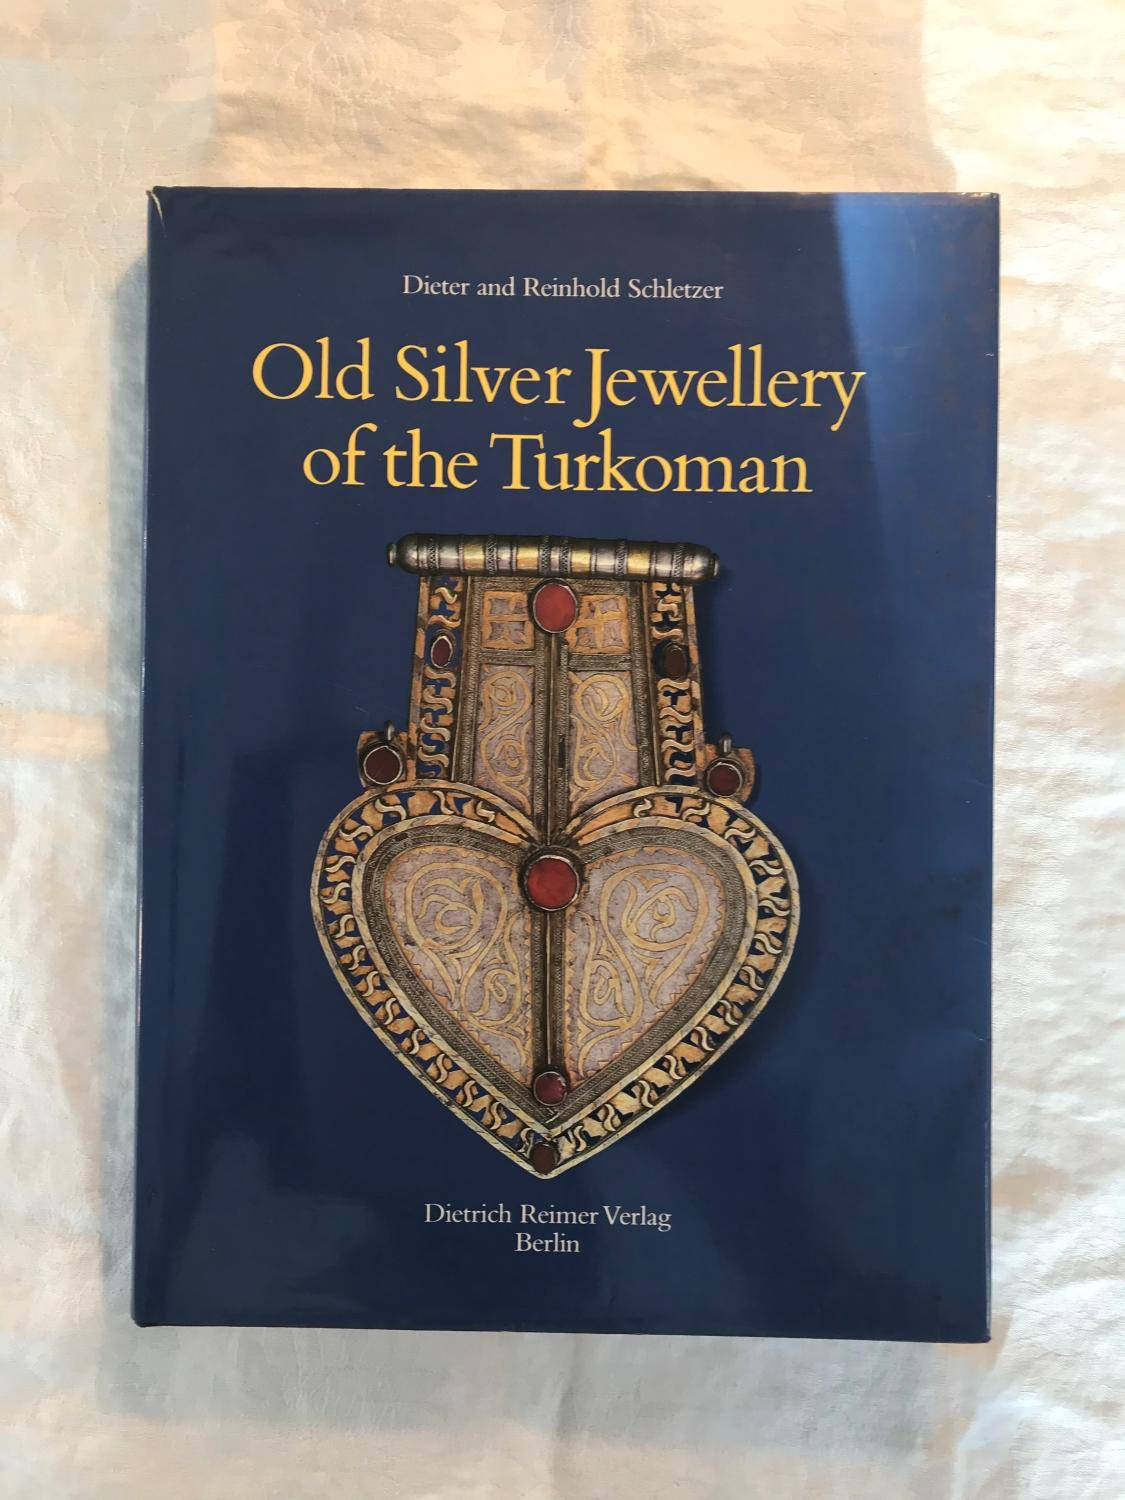 Old Silver Jewellery of the Turkoman Dieter and Reinhold Schletzer [Near Fine] [Hardcover]